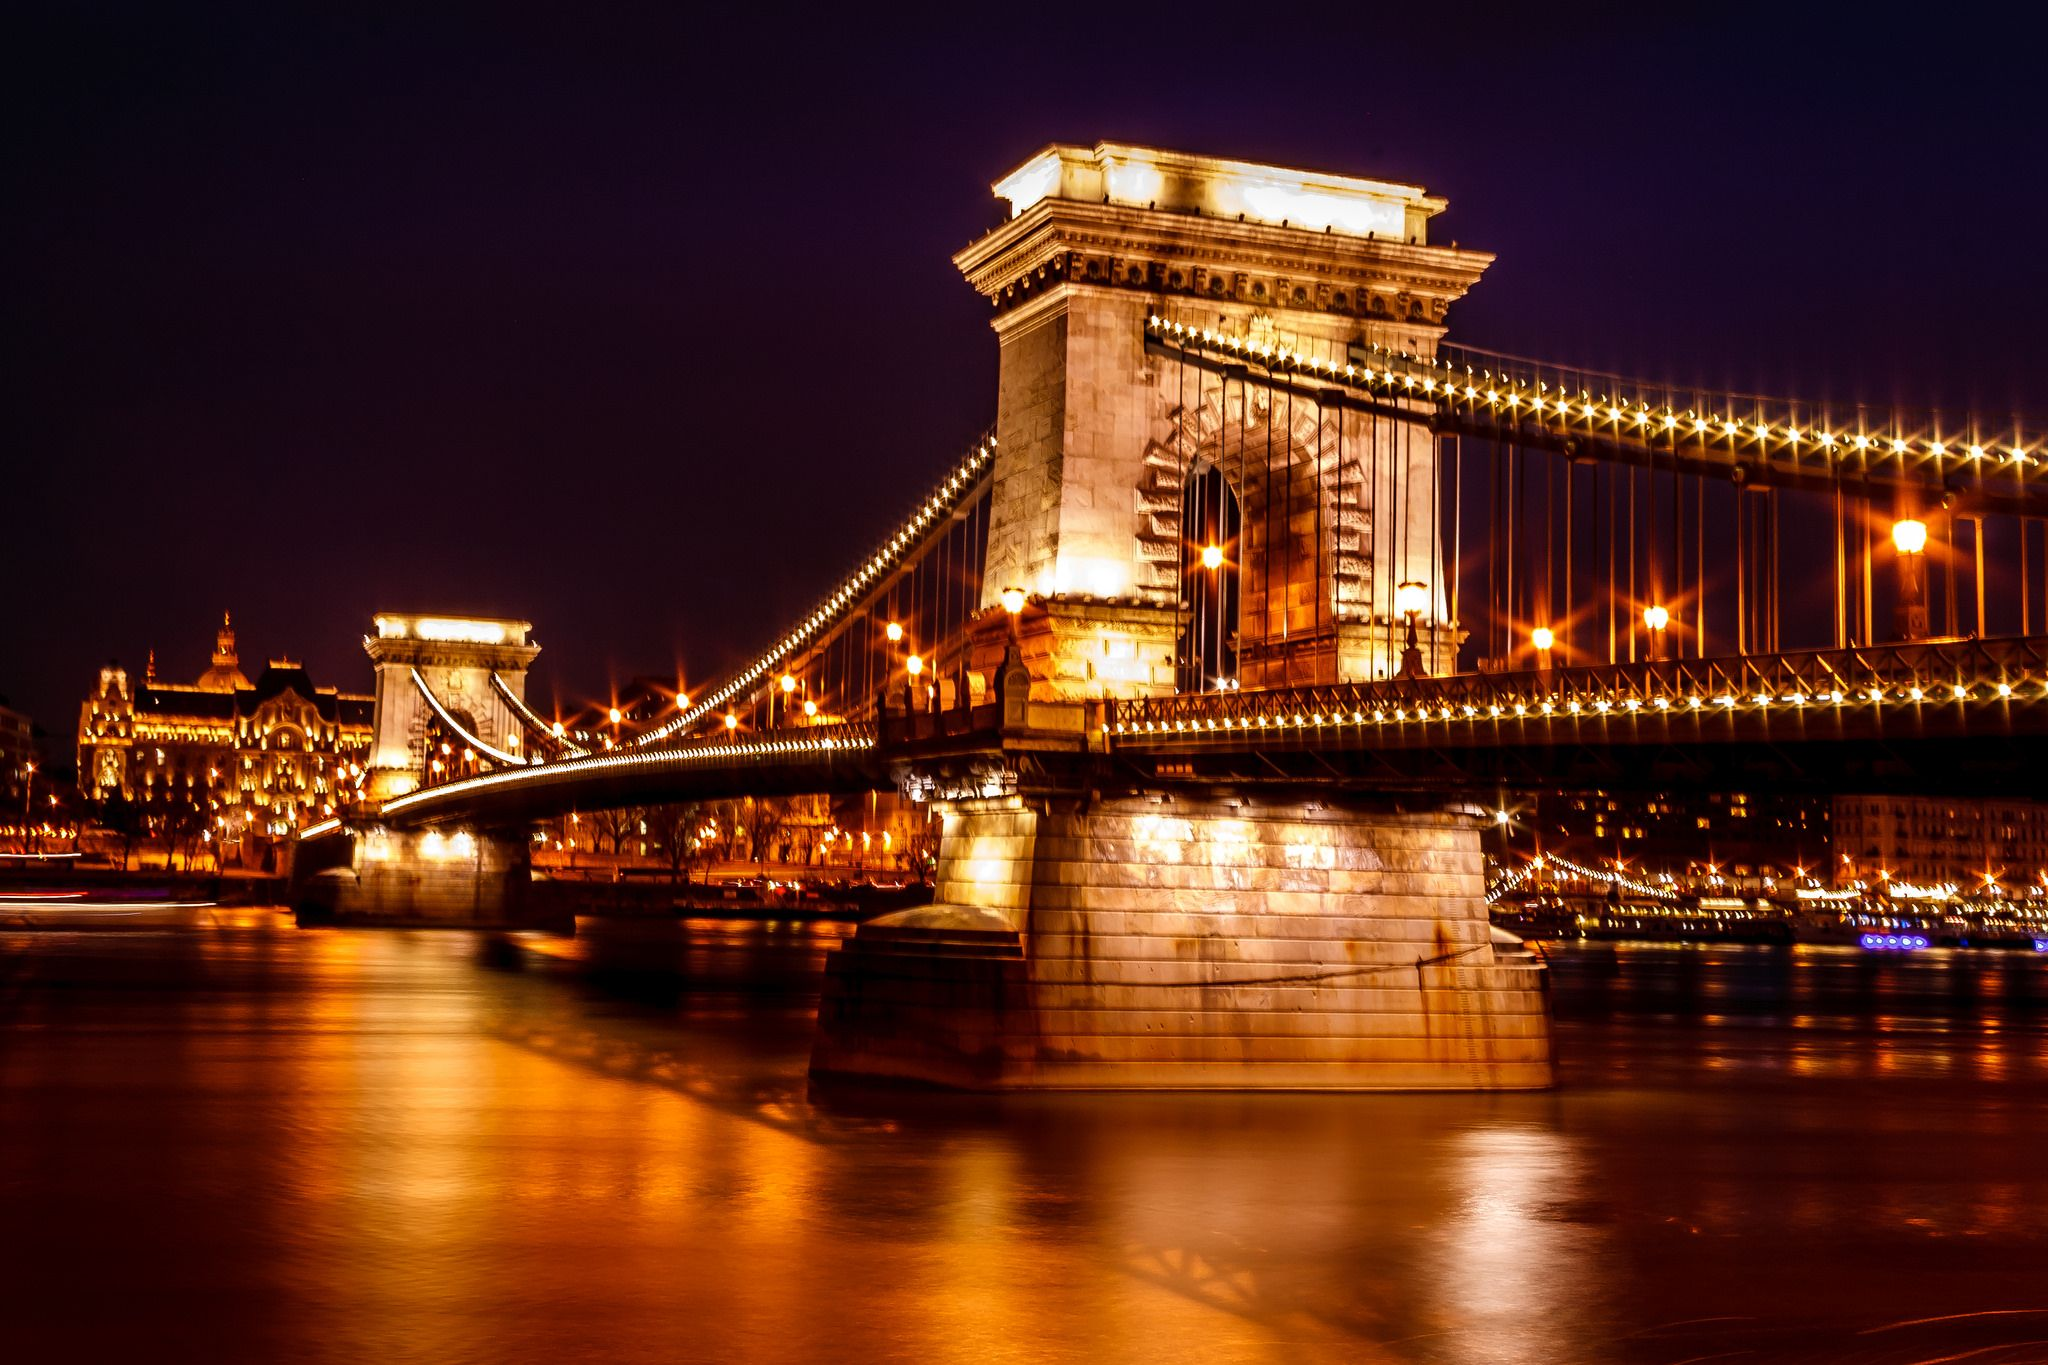 https://flic.kr/p/rxZwHu | Chain Bridge